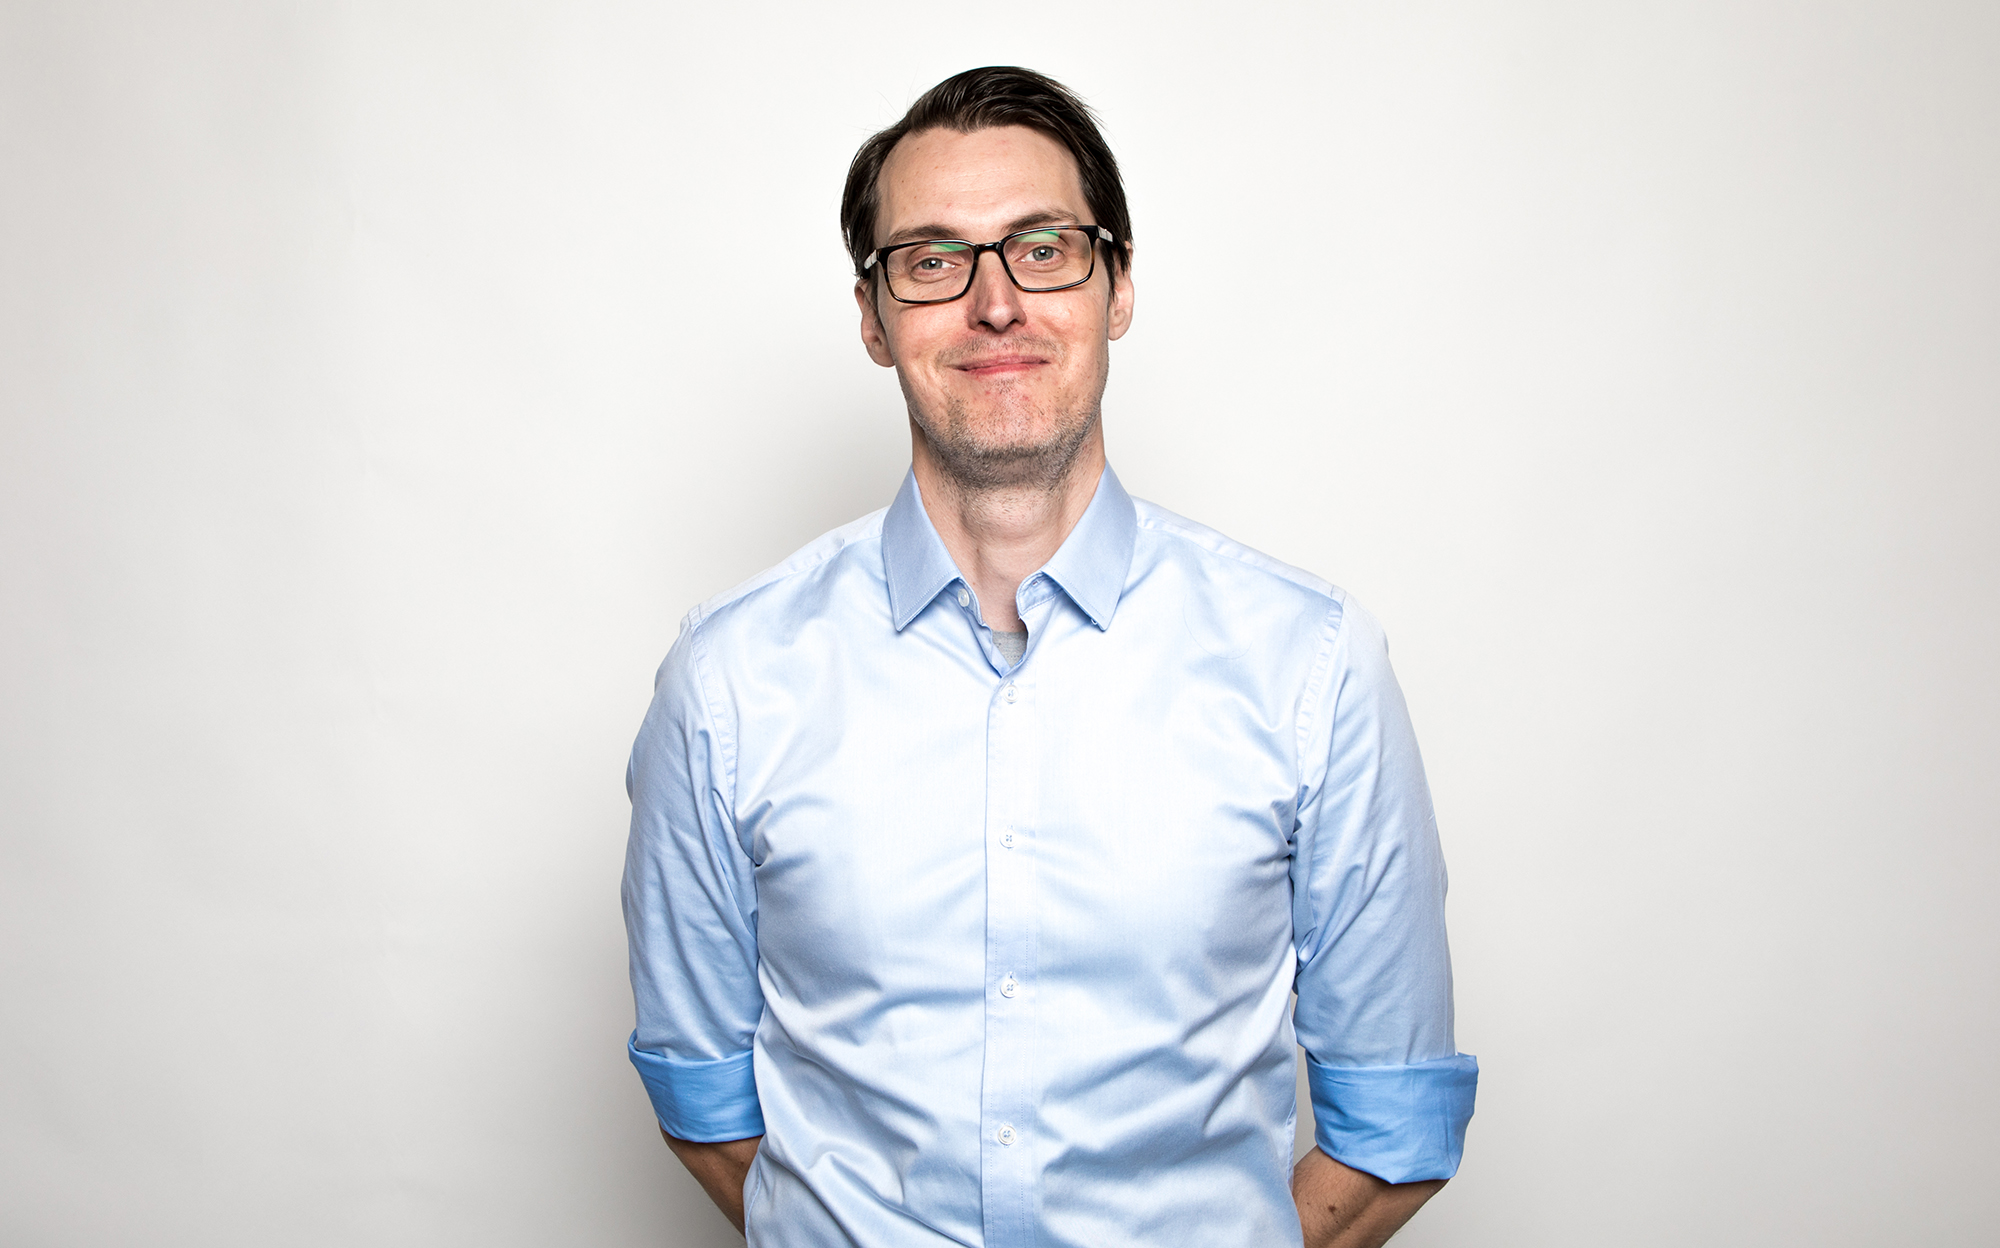 Dentsu Aegis Network promotes Erik Hallander to chief executive officer role at Isobar ANZ